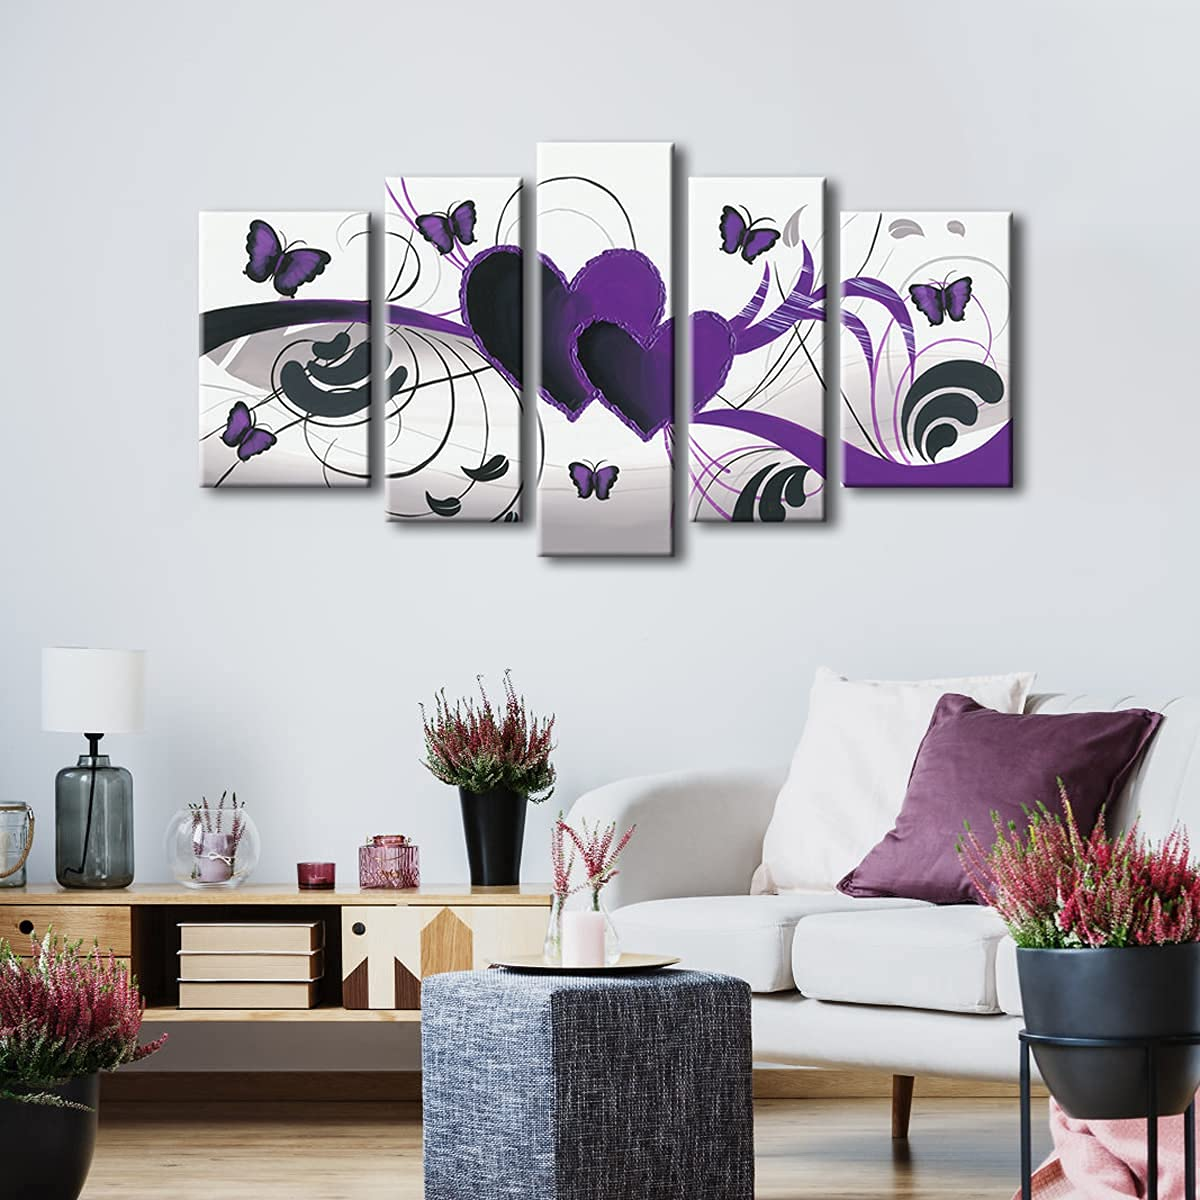 Wieco Art - Purple Love Butterfly 5 Panels Modern 100% Hand Painted Abstract Oil Paintings Artwork on Stretched and Framed Canvas Wall Art Ready to Hang for Wall Decor Home Decoration